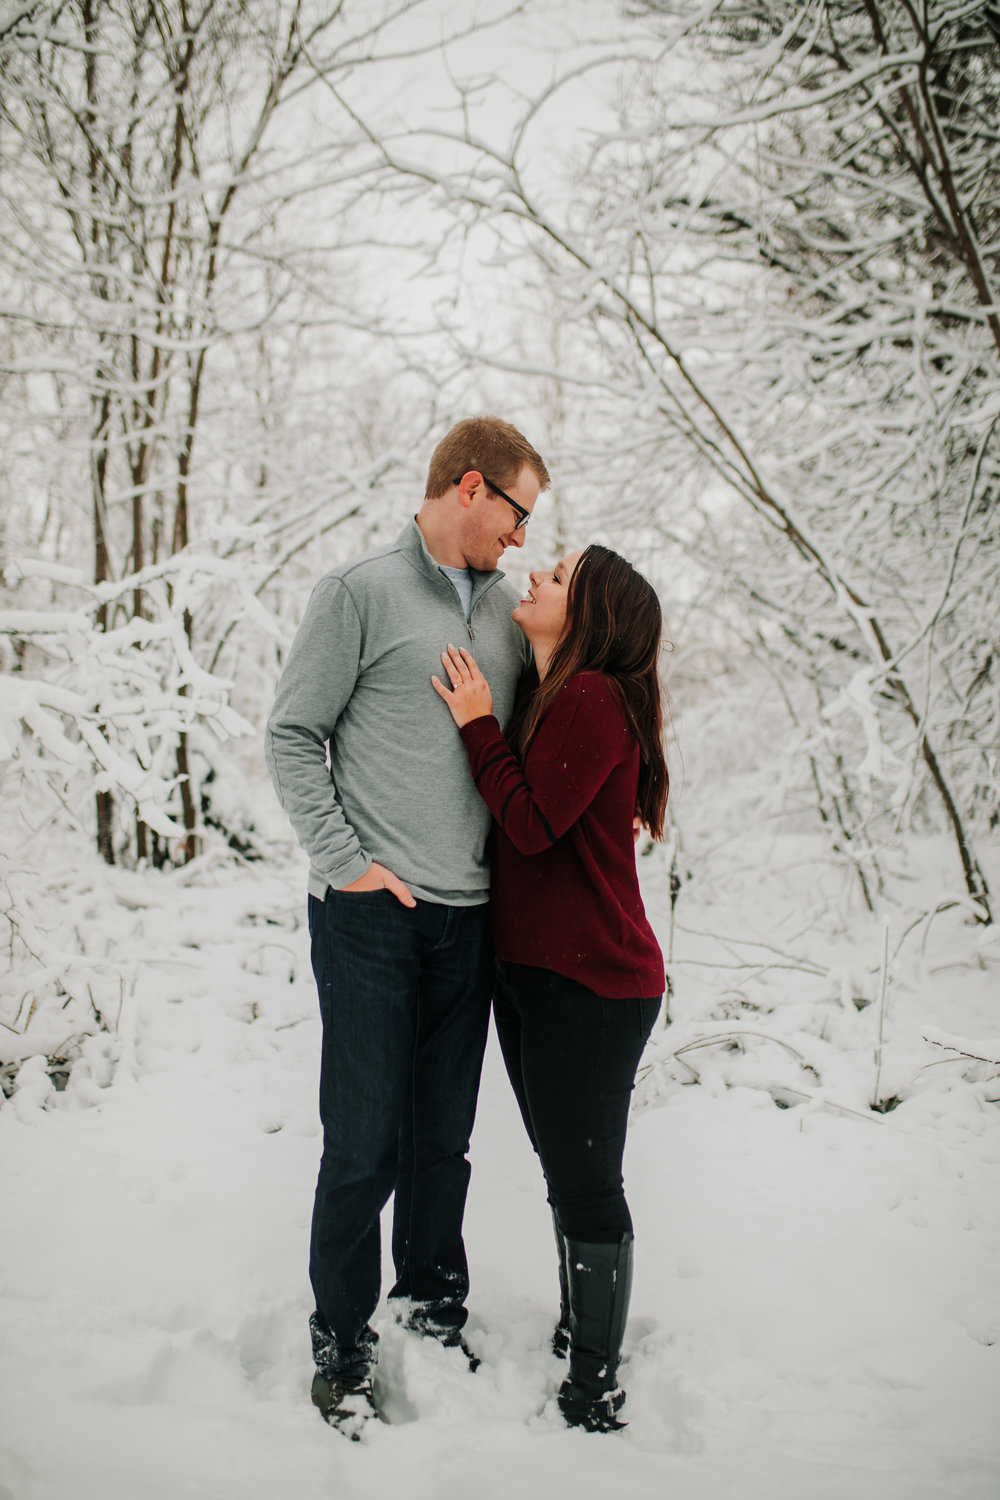 Vanessa & Dan - Engaged - Nathaniel Jensen Photography - Omaha Nebraska Wedding Photographer - Standing Bear Lake - Snowy Engagement Session-72.jpg